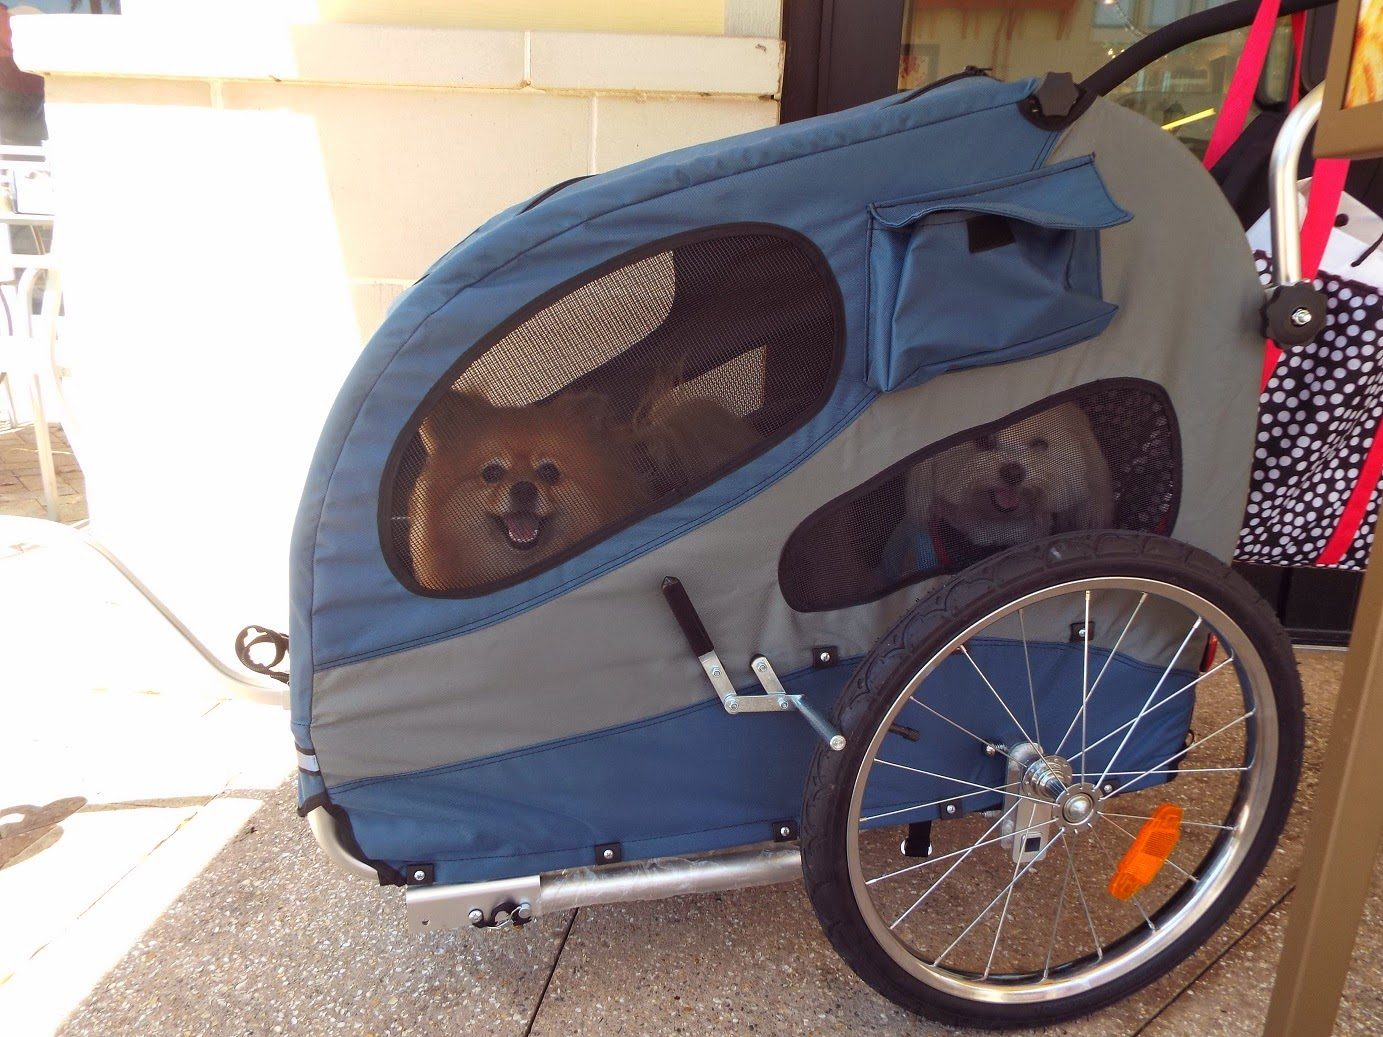 Pepper S Paws Solvit Houndabout Ii Large Pet Stroller Product